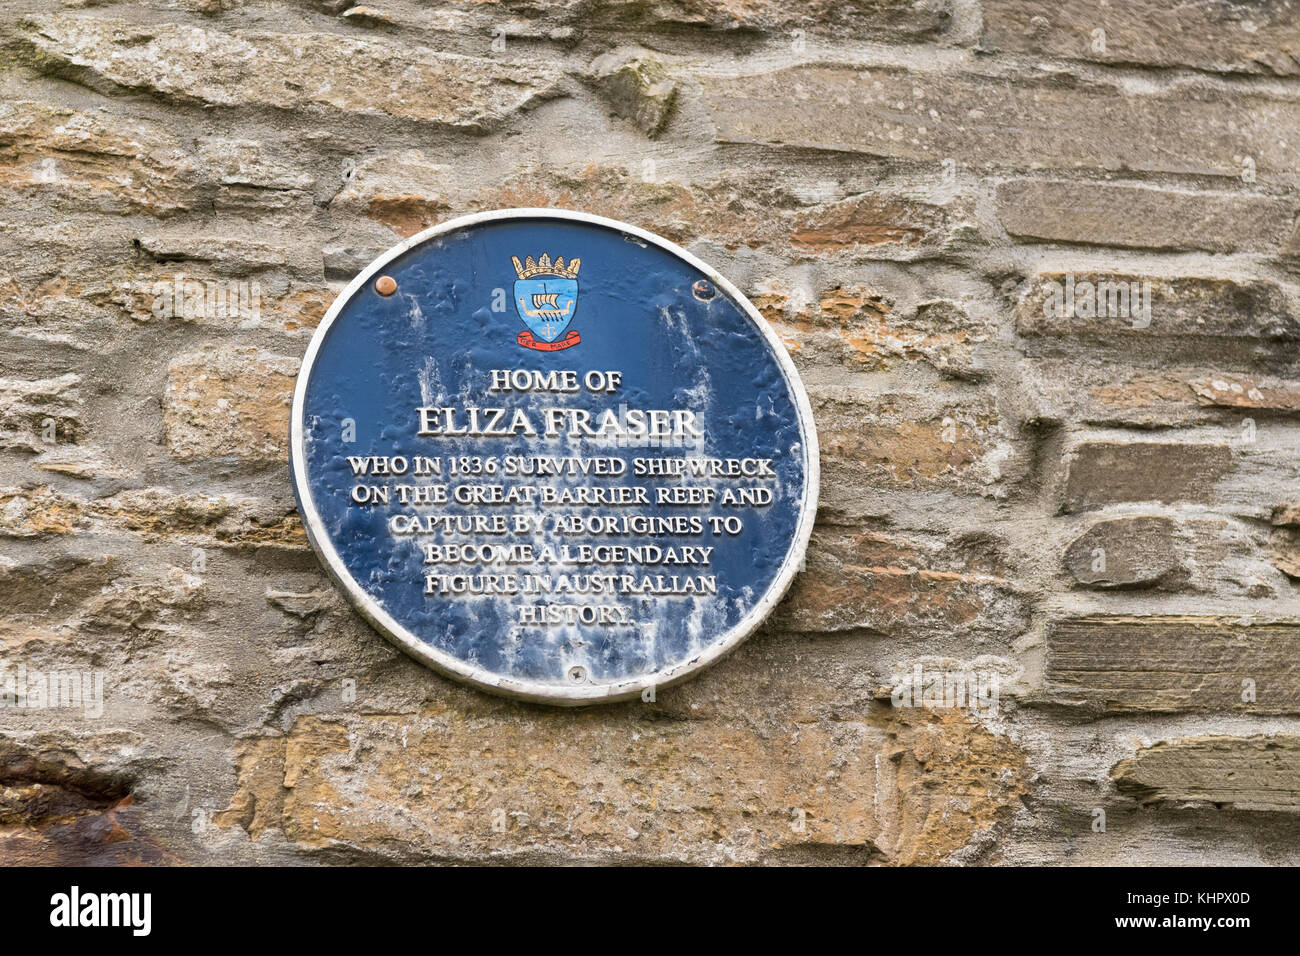 Commemorative plaque on what is believed to have been the home of Eliza Fraser, Stromness, Orkney, Scotland, UK - Stock Image